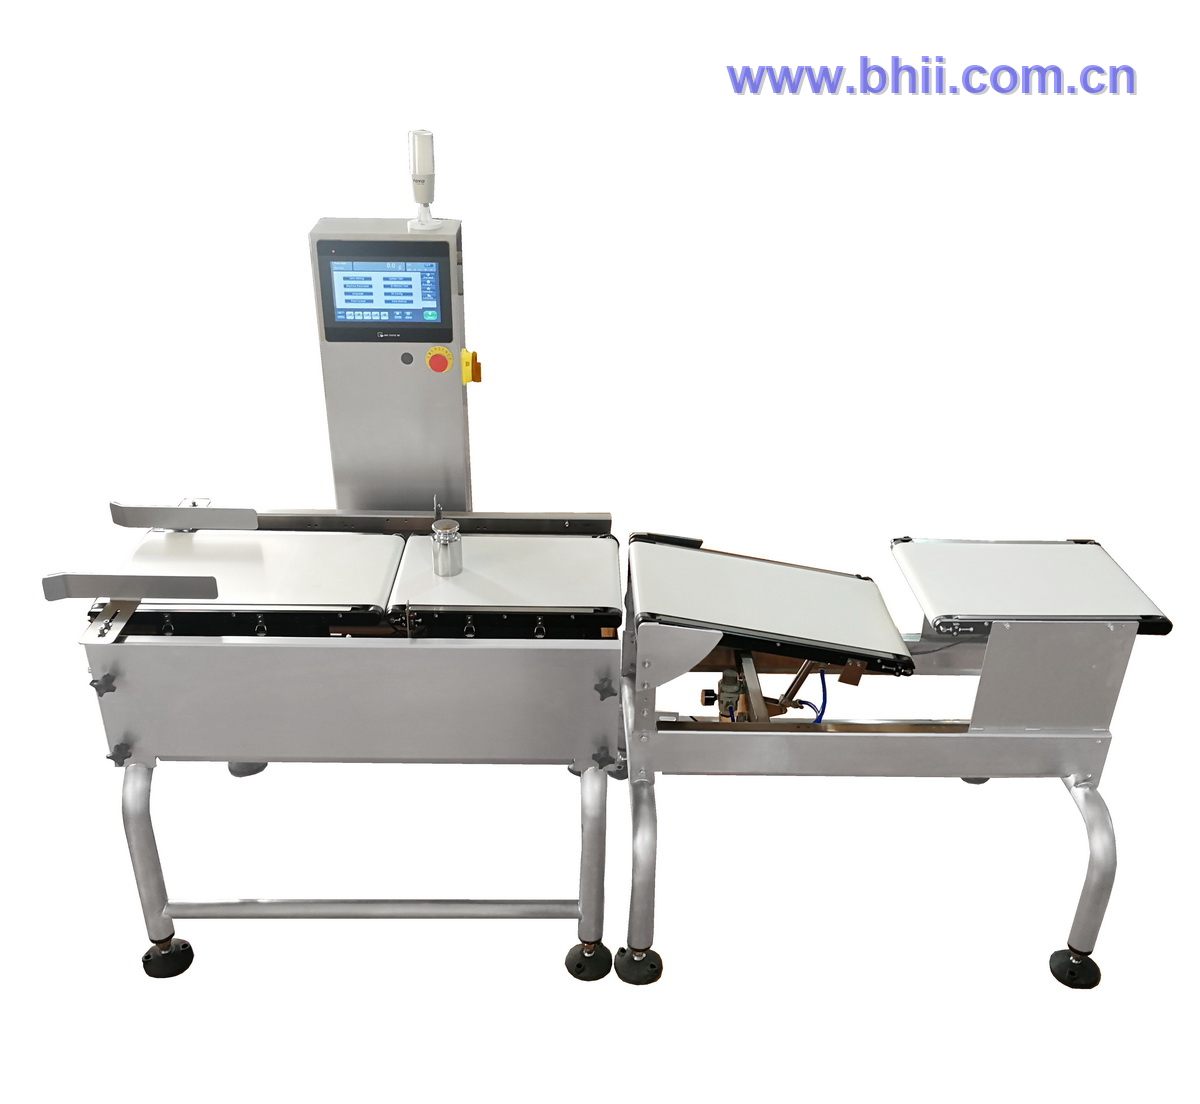 SW300-D32/360-D32 High Performance Checkweigher